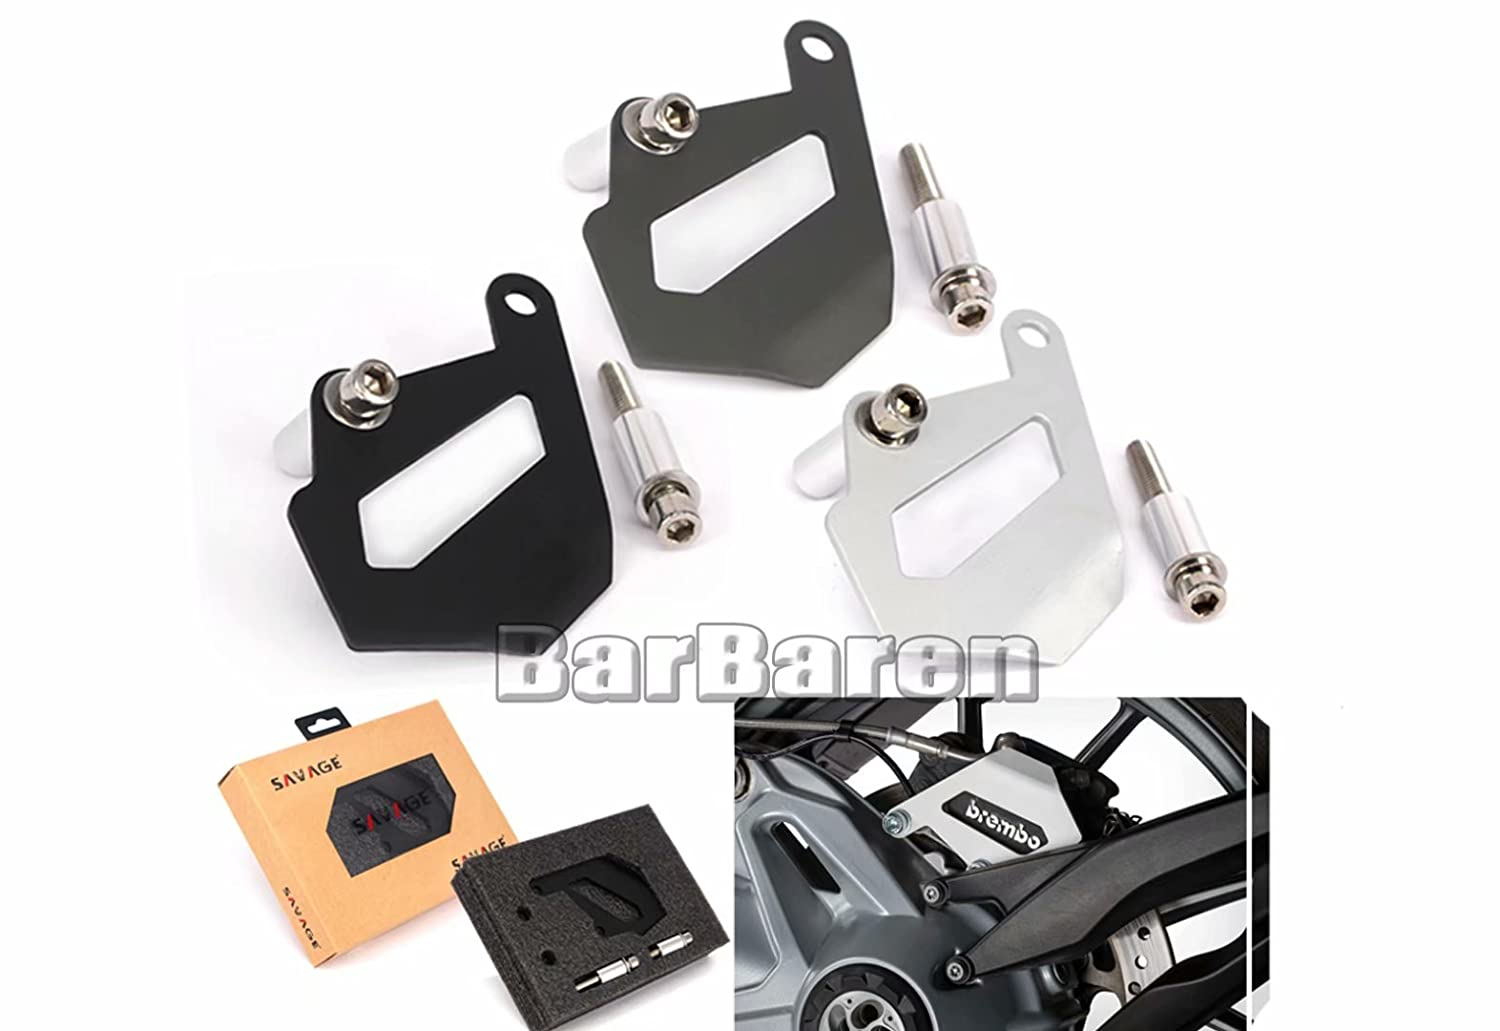 Rear Brake Caliper Cover Guard For BMW R1200GS LC R1200GS ADV R1200RT LC 2014-2017 R1200R LC R1200RS LC 2015-2017 Houshachebenghuzhao-R1200GS LC 1316